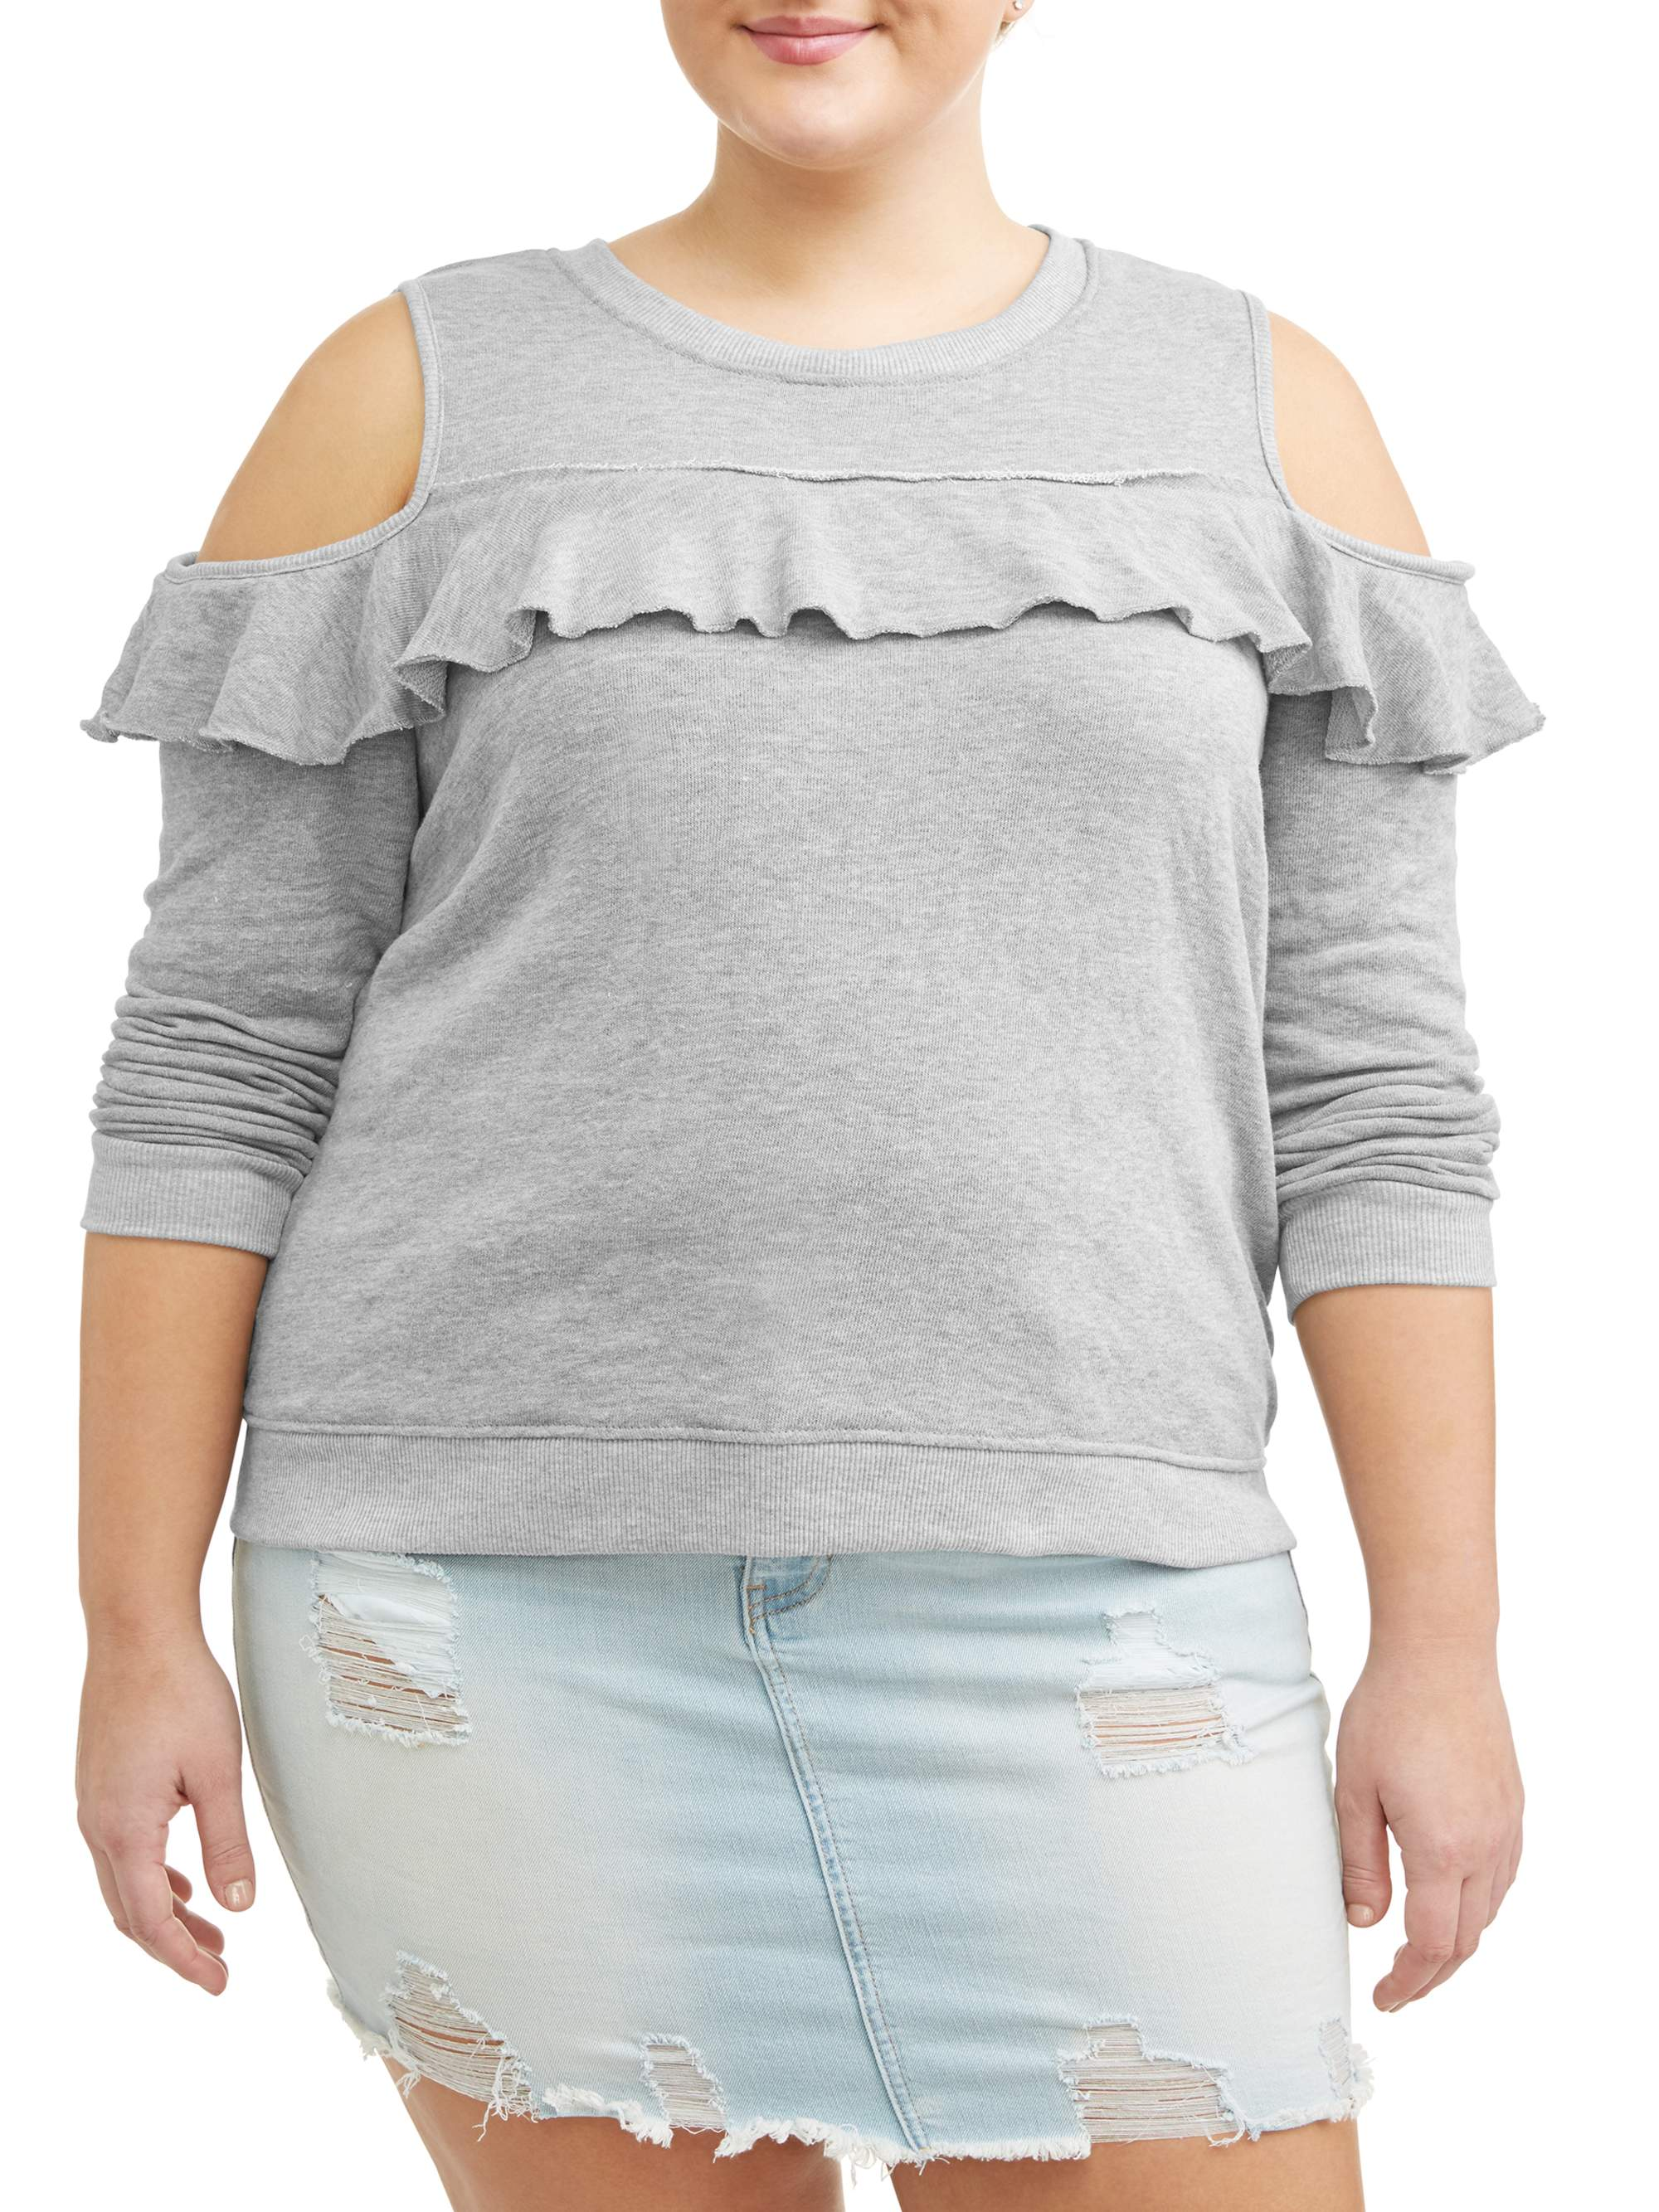 Juniors' Plus Size Scoop Neck Cold Shoulder Sweatshirt with Ruffle Trim